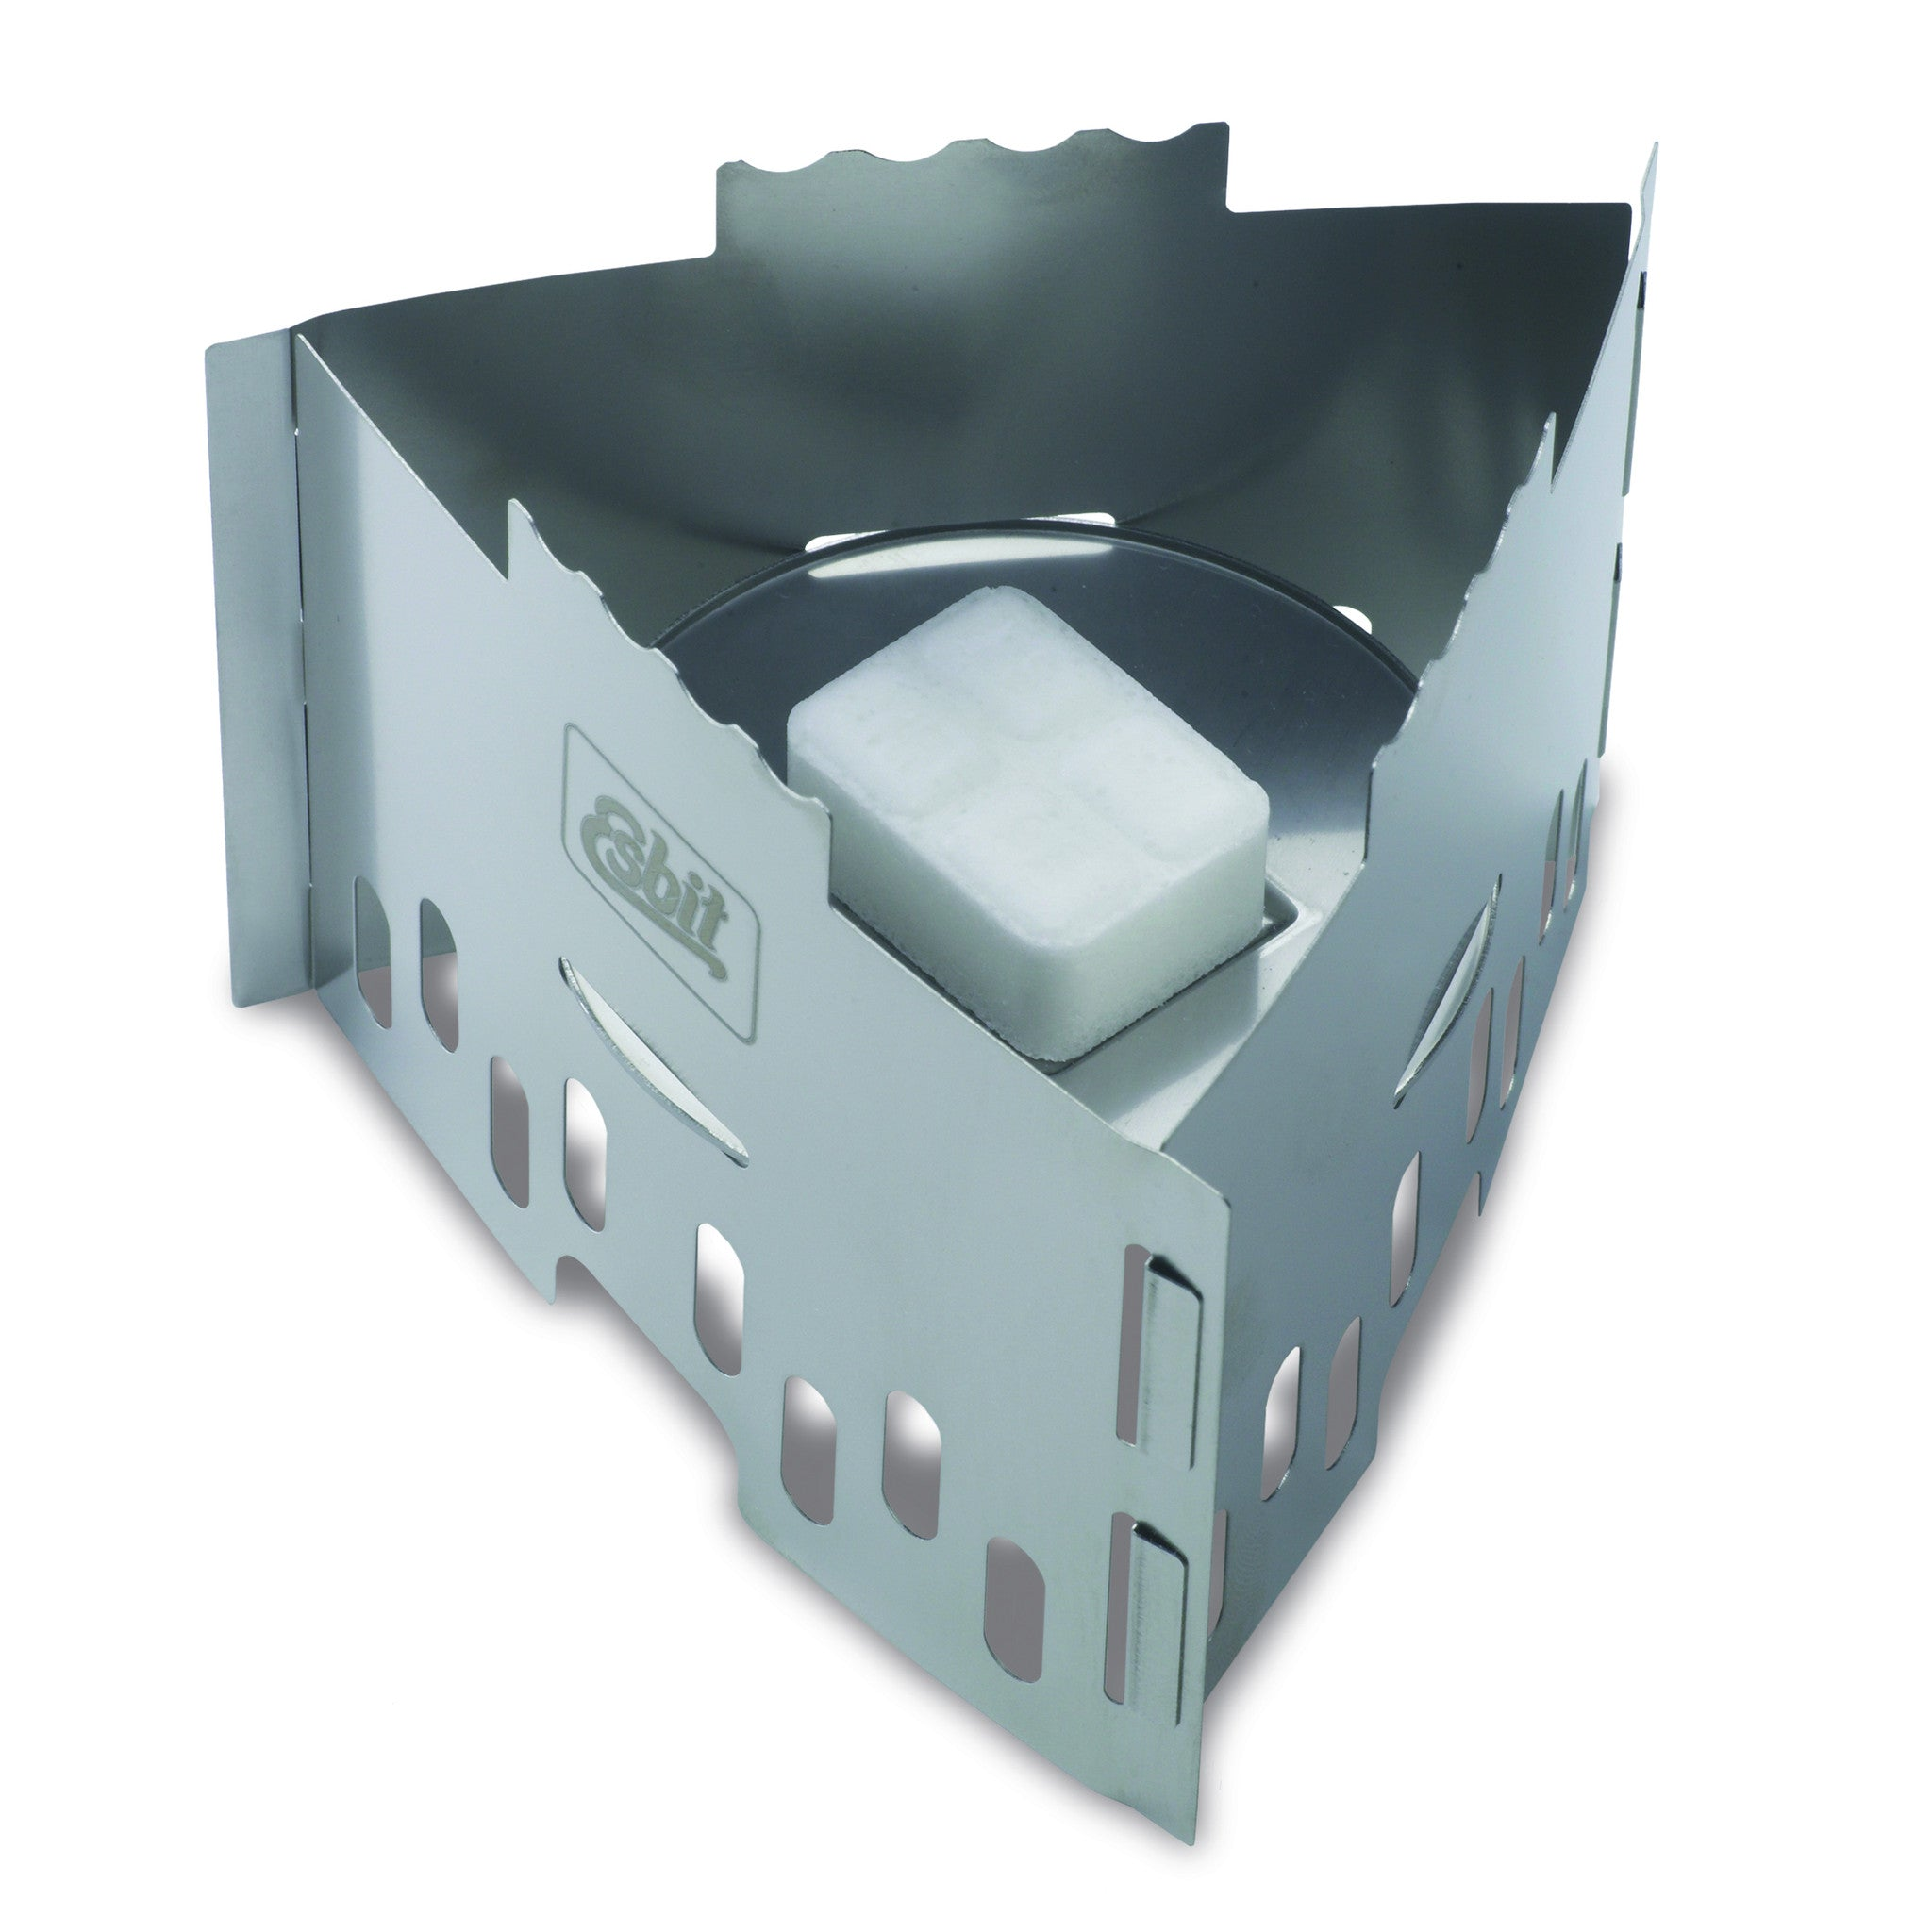 Esbit Stainless Steel Solid Fuel Stove, lightweight camping equipment